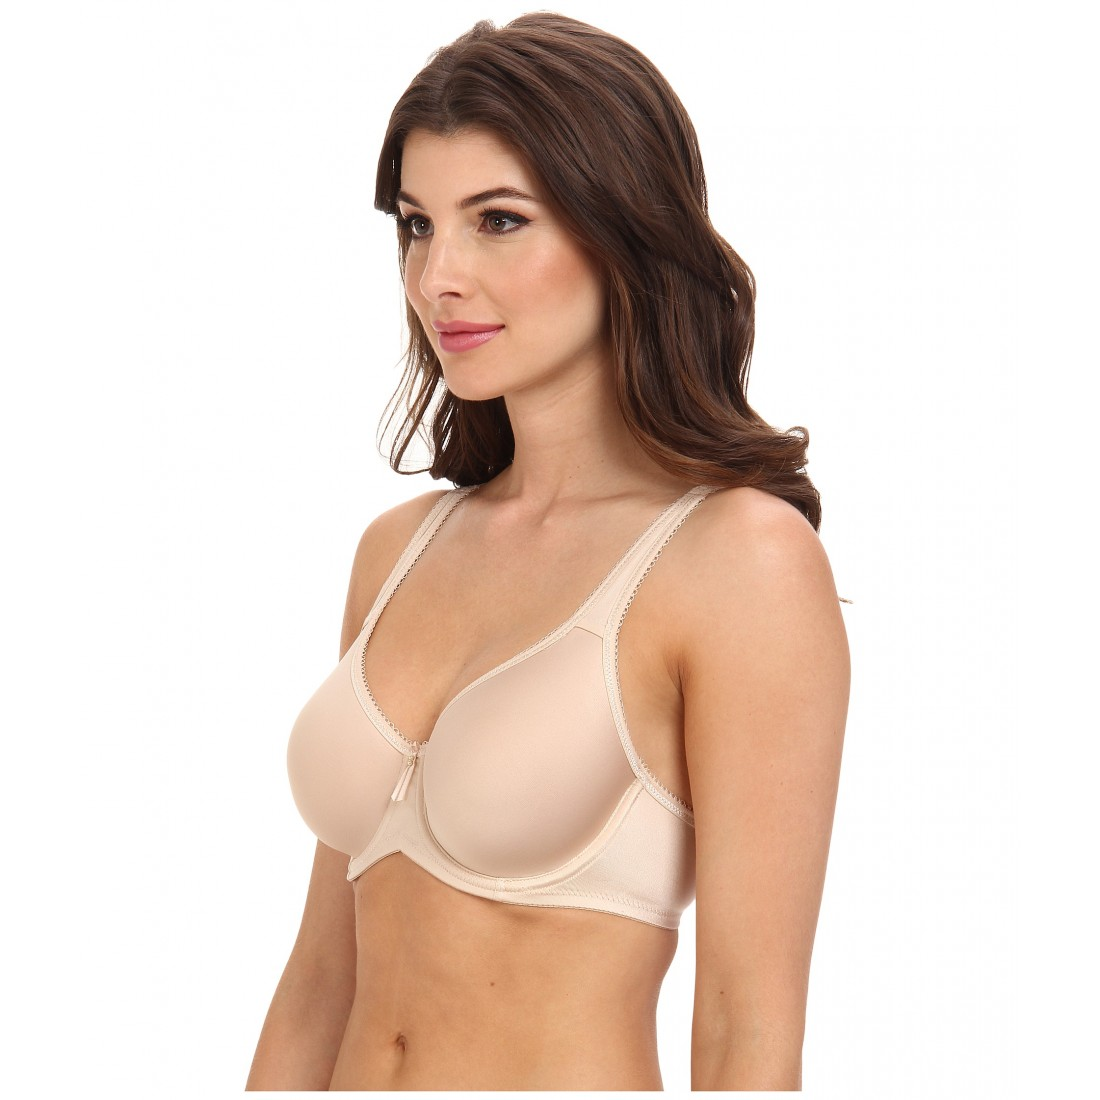 bf046130e Wacoal Basic Beauty Spacer Underwire T-Shirt Bra 853192 ZPSKU 8418603  Natural Nude